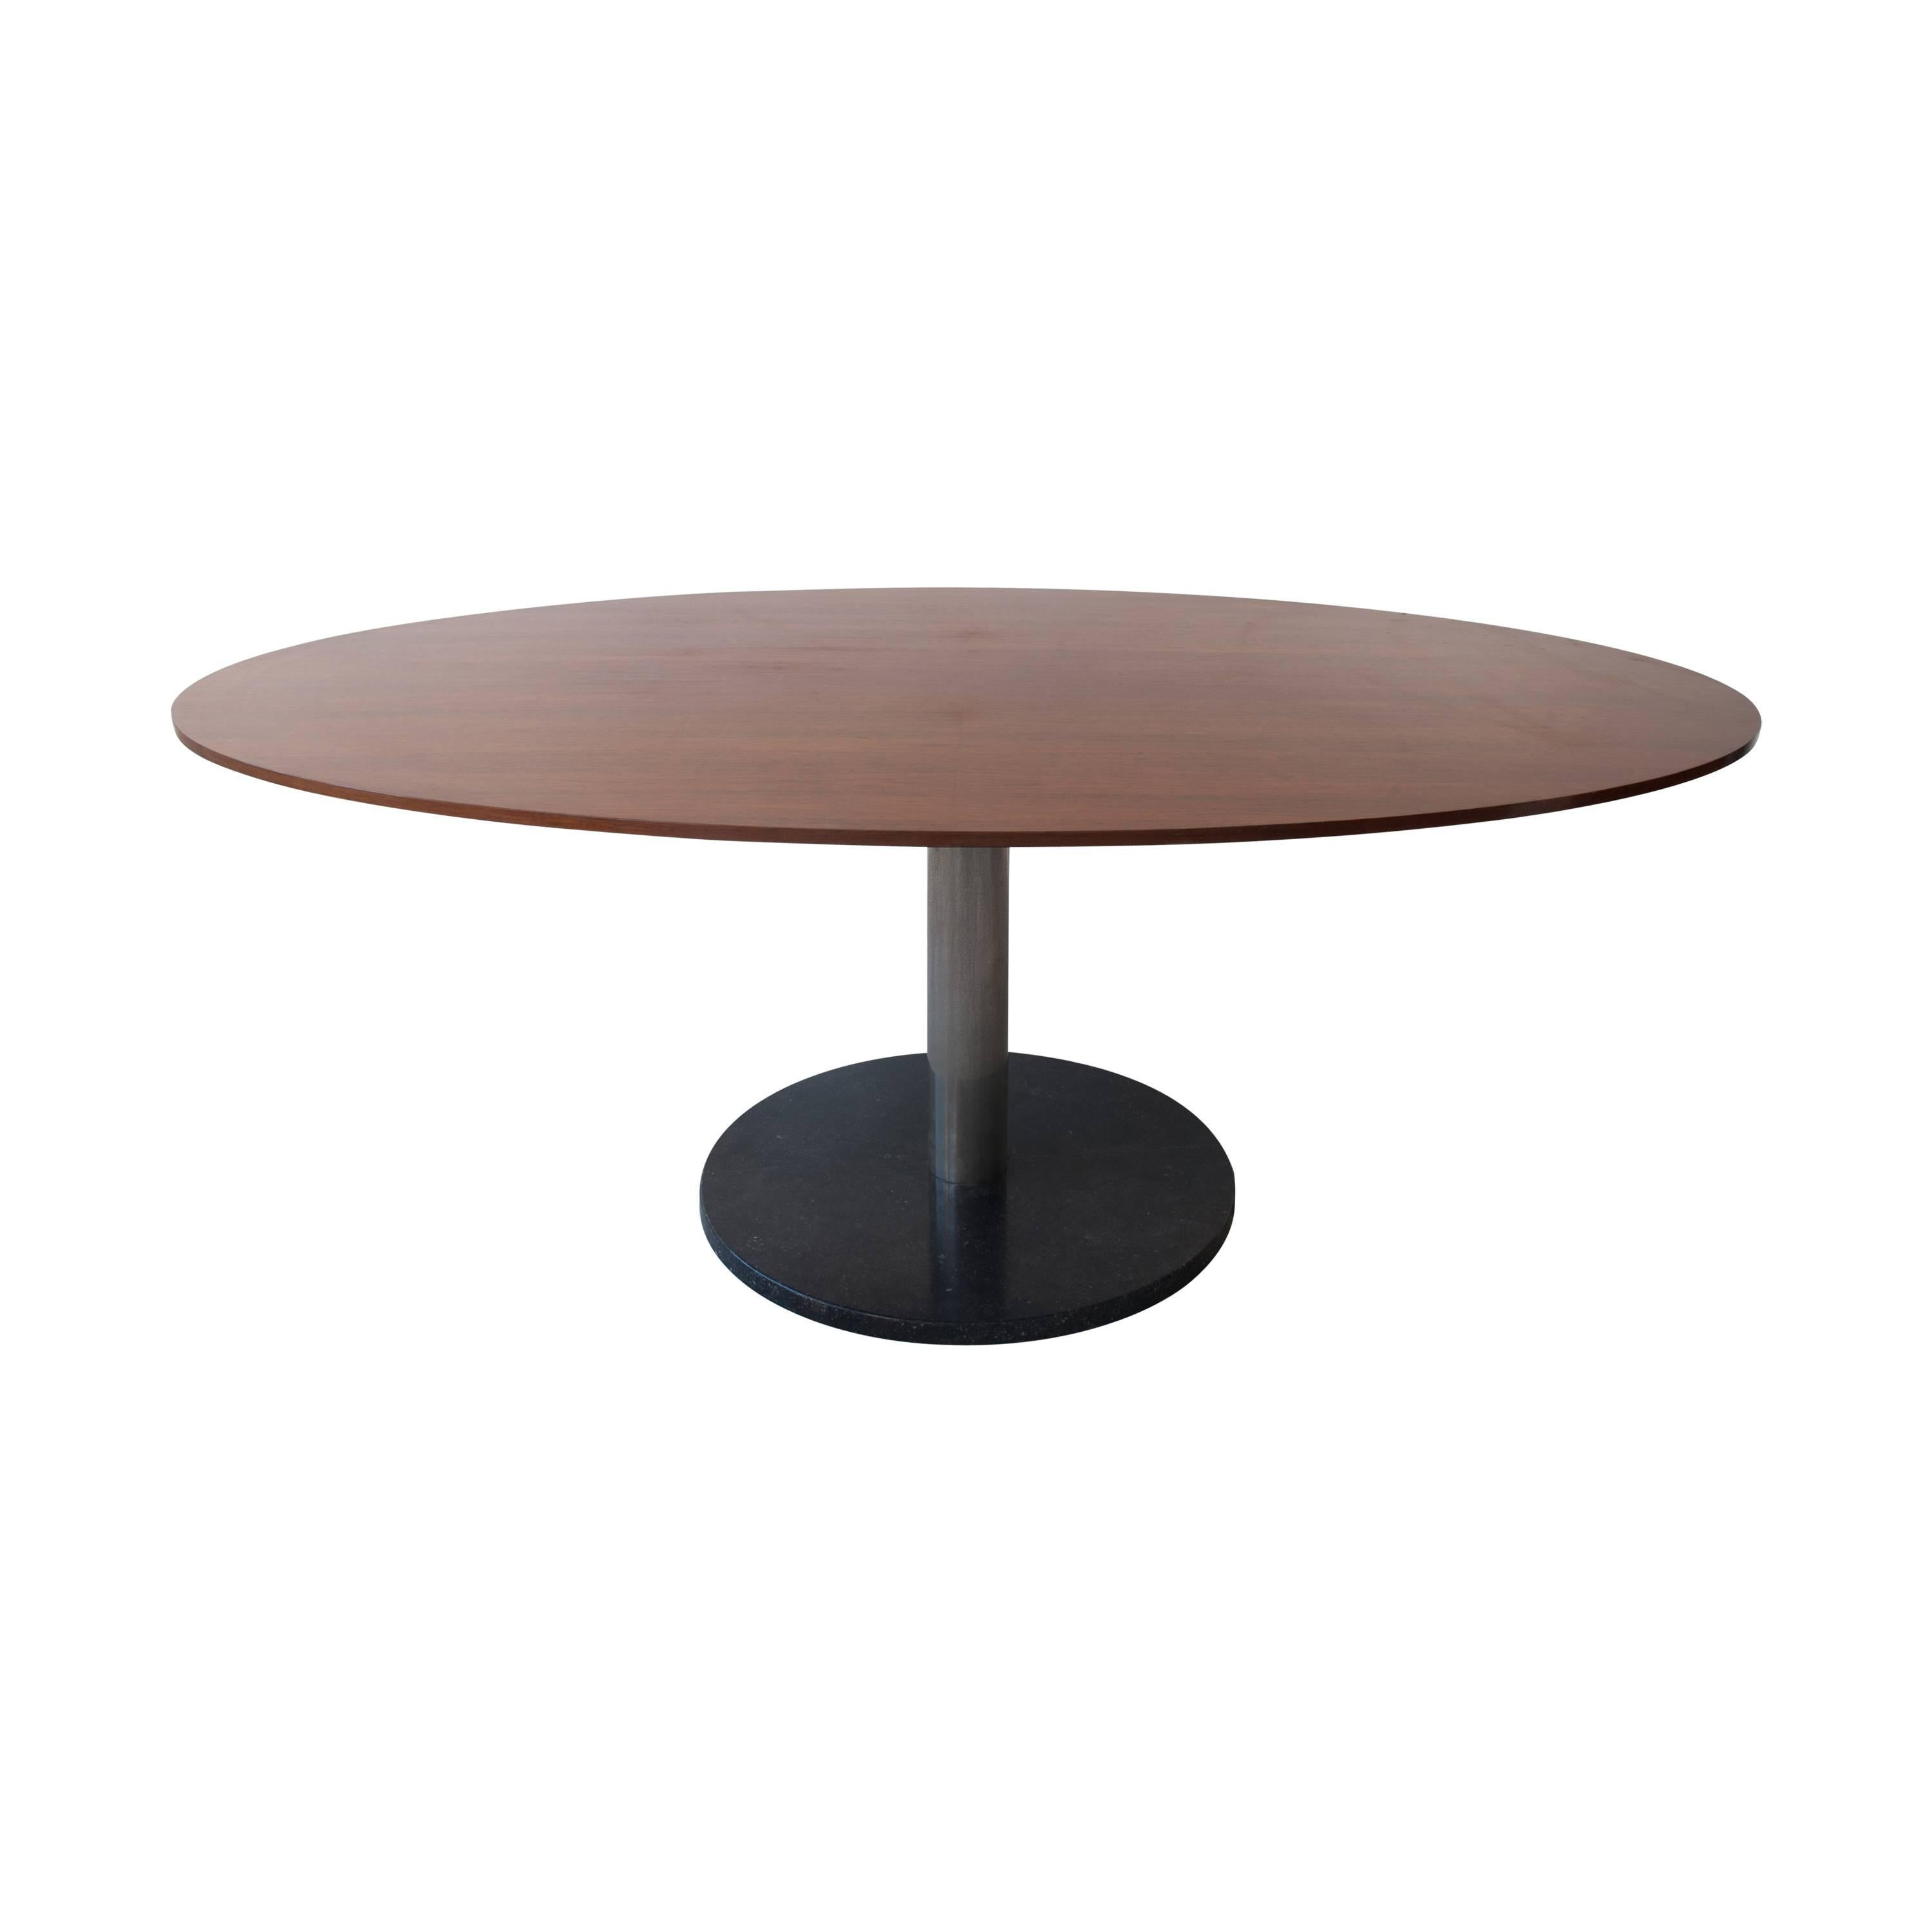 Alfred Hendrickx Oval Shaped Rosewood Dining Table, Belgium Design, 1962  For Sale